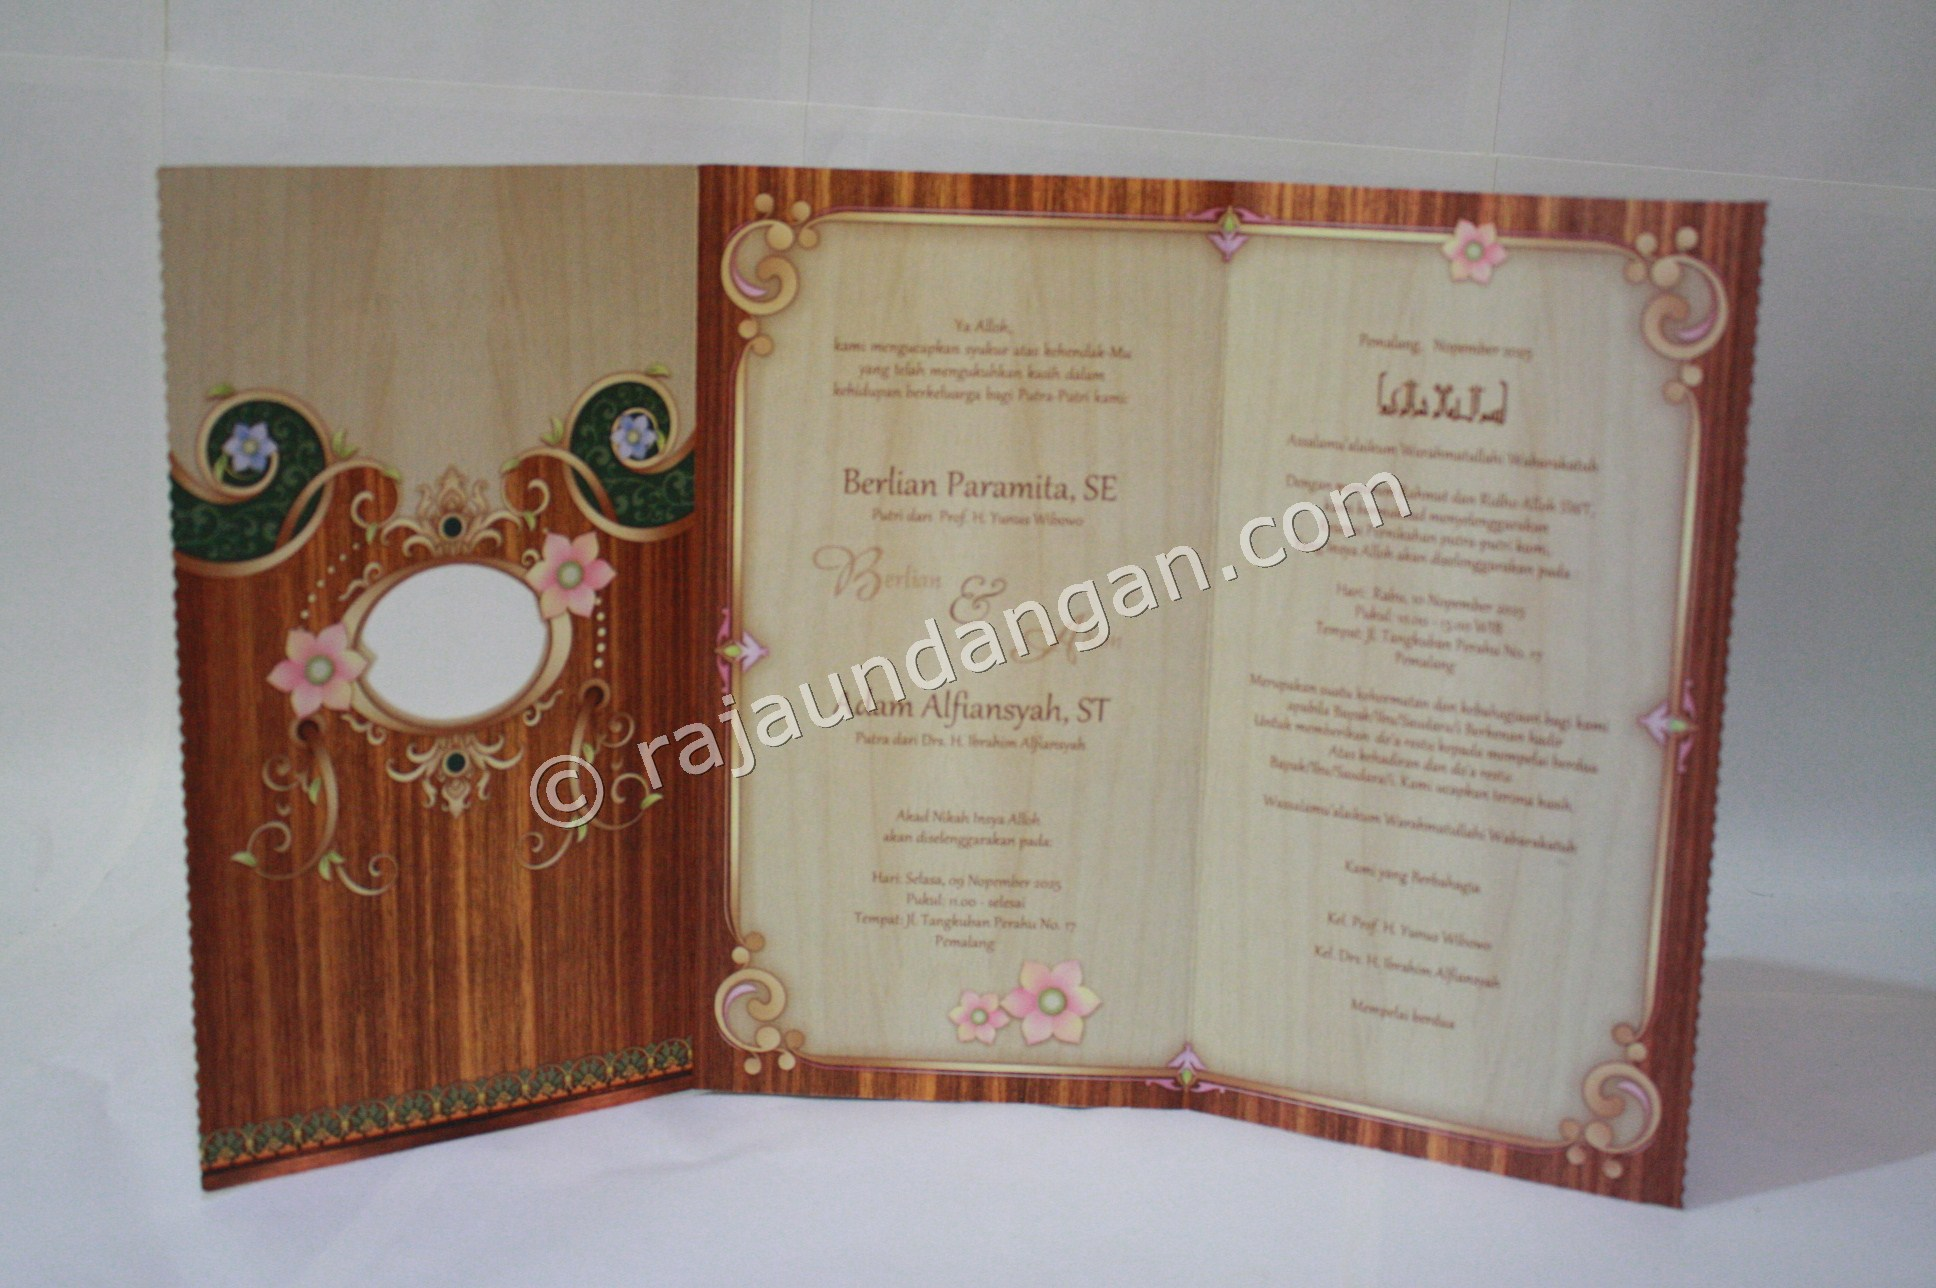 Undangan Pernikahan Softcover Berlian dan Adam 3 - Percetakan Wedding Invitations Unik dan Eksklusif di Tandes